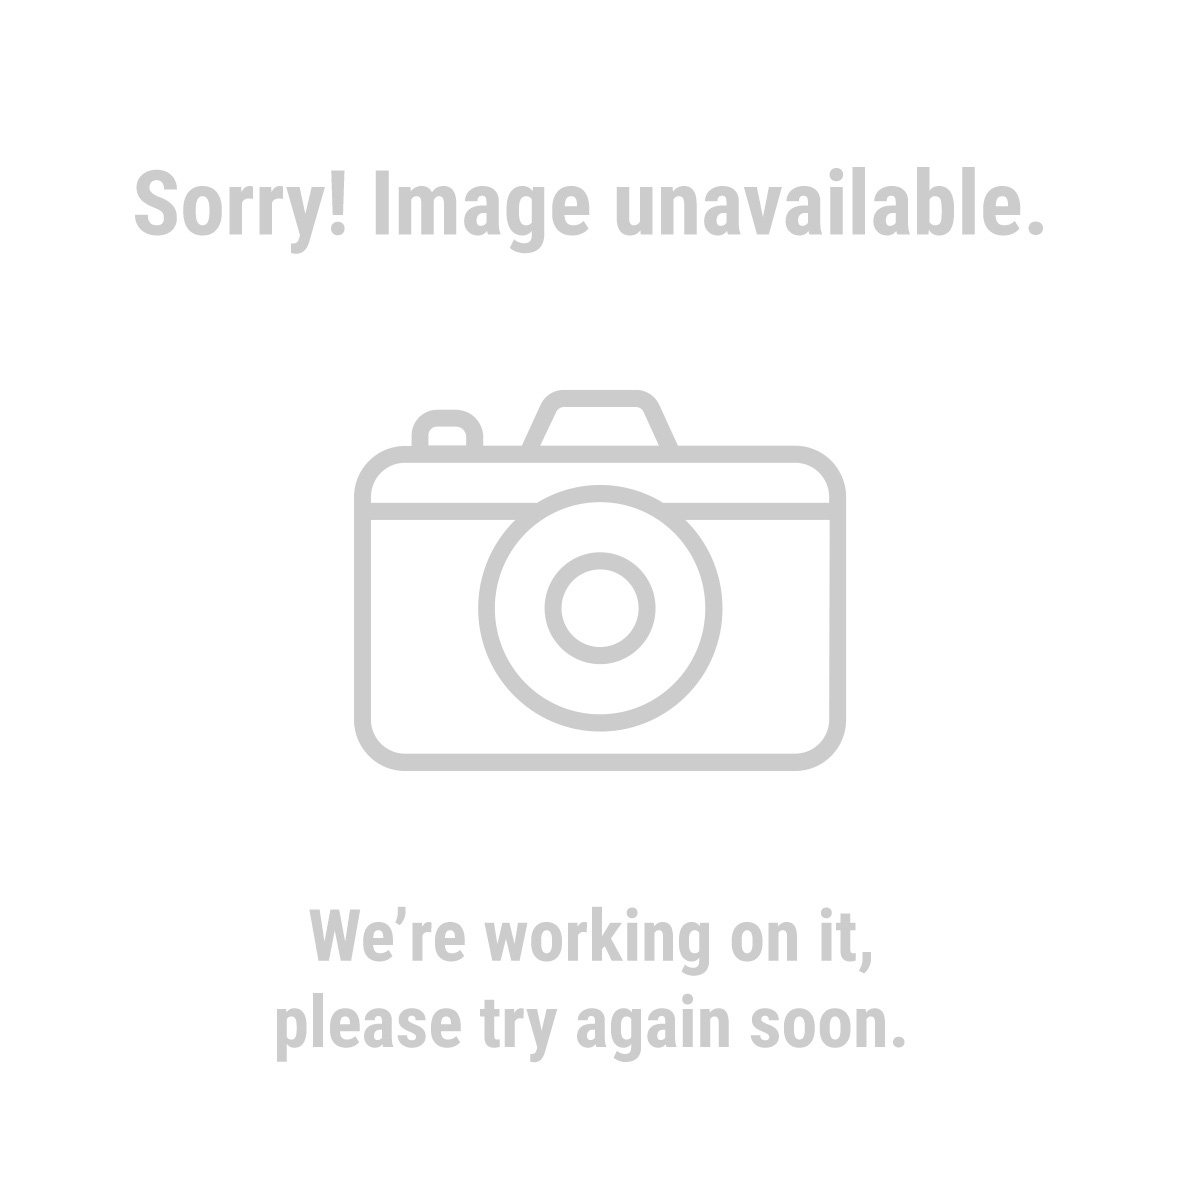 Haul-Master 61320 Triple Ball Trailer Hitch